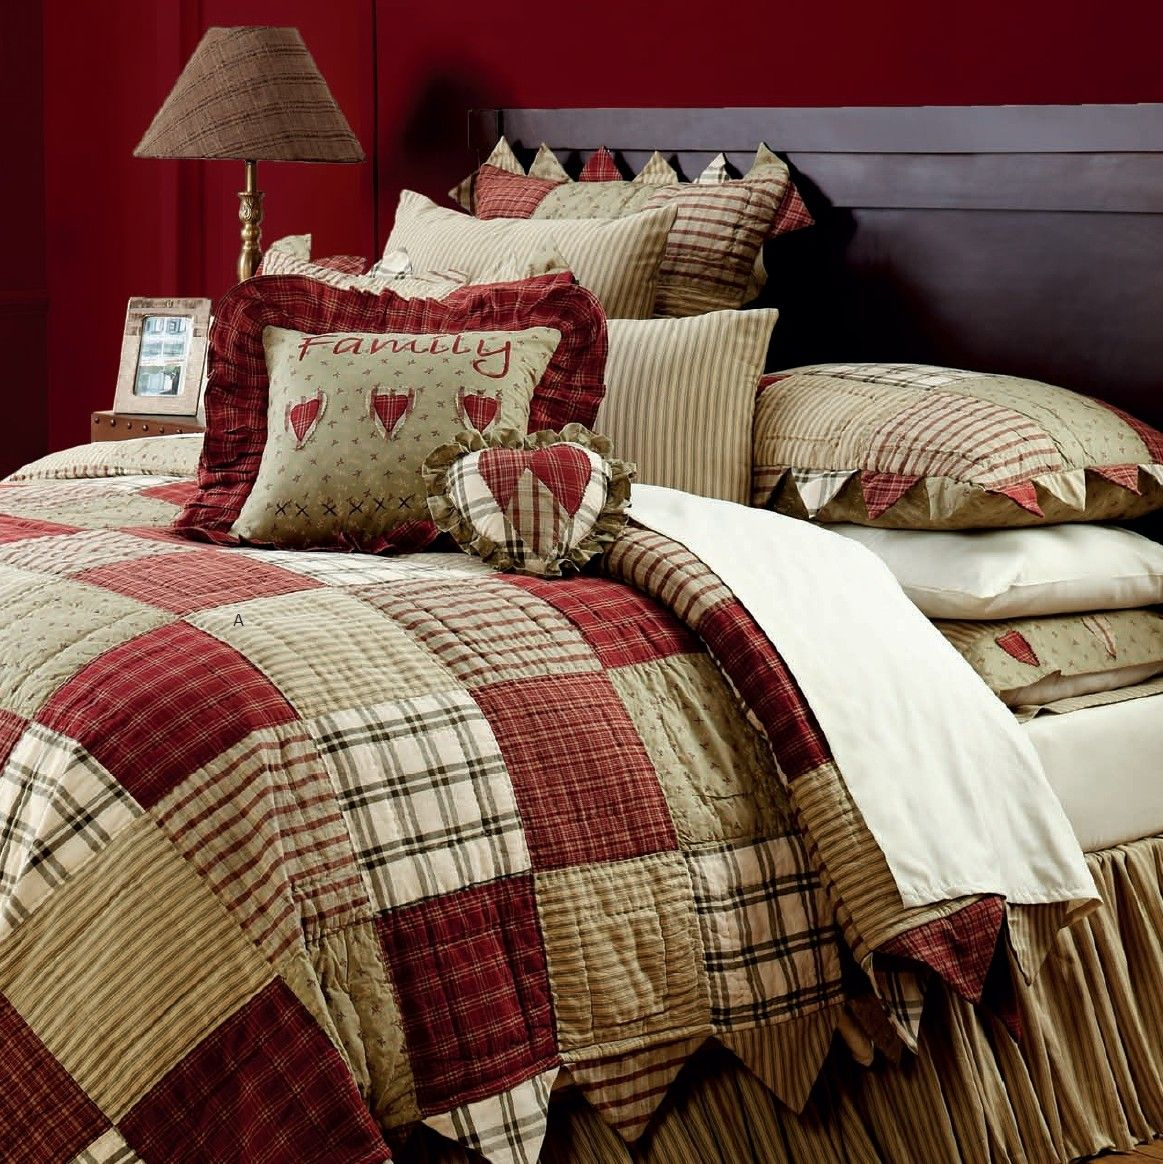 Lasting Impressions Heartland Country Quilt Comforter Co 199 Quilt Only Country Bedding Sets Quilt Sets Bedding Bedding Sets